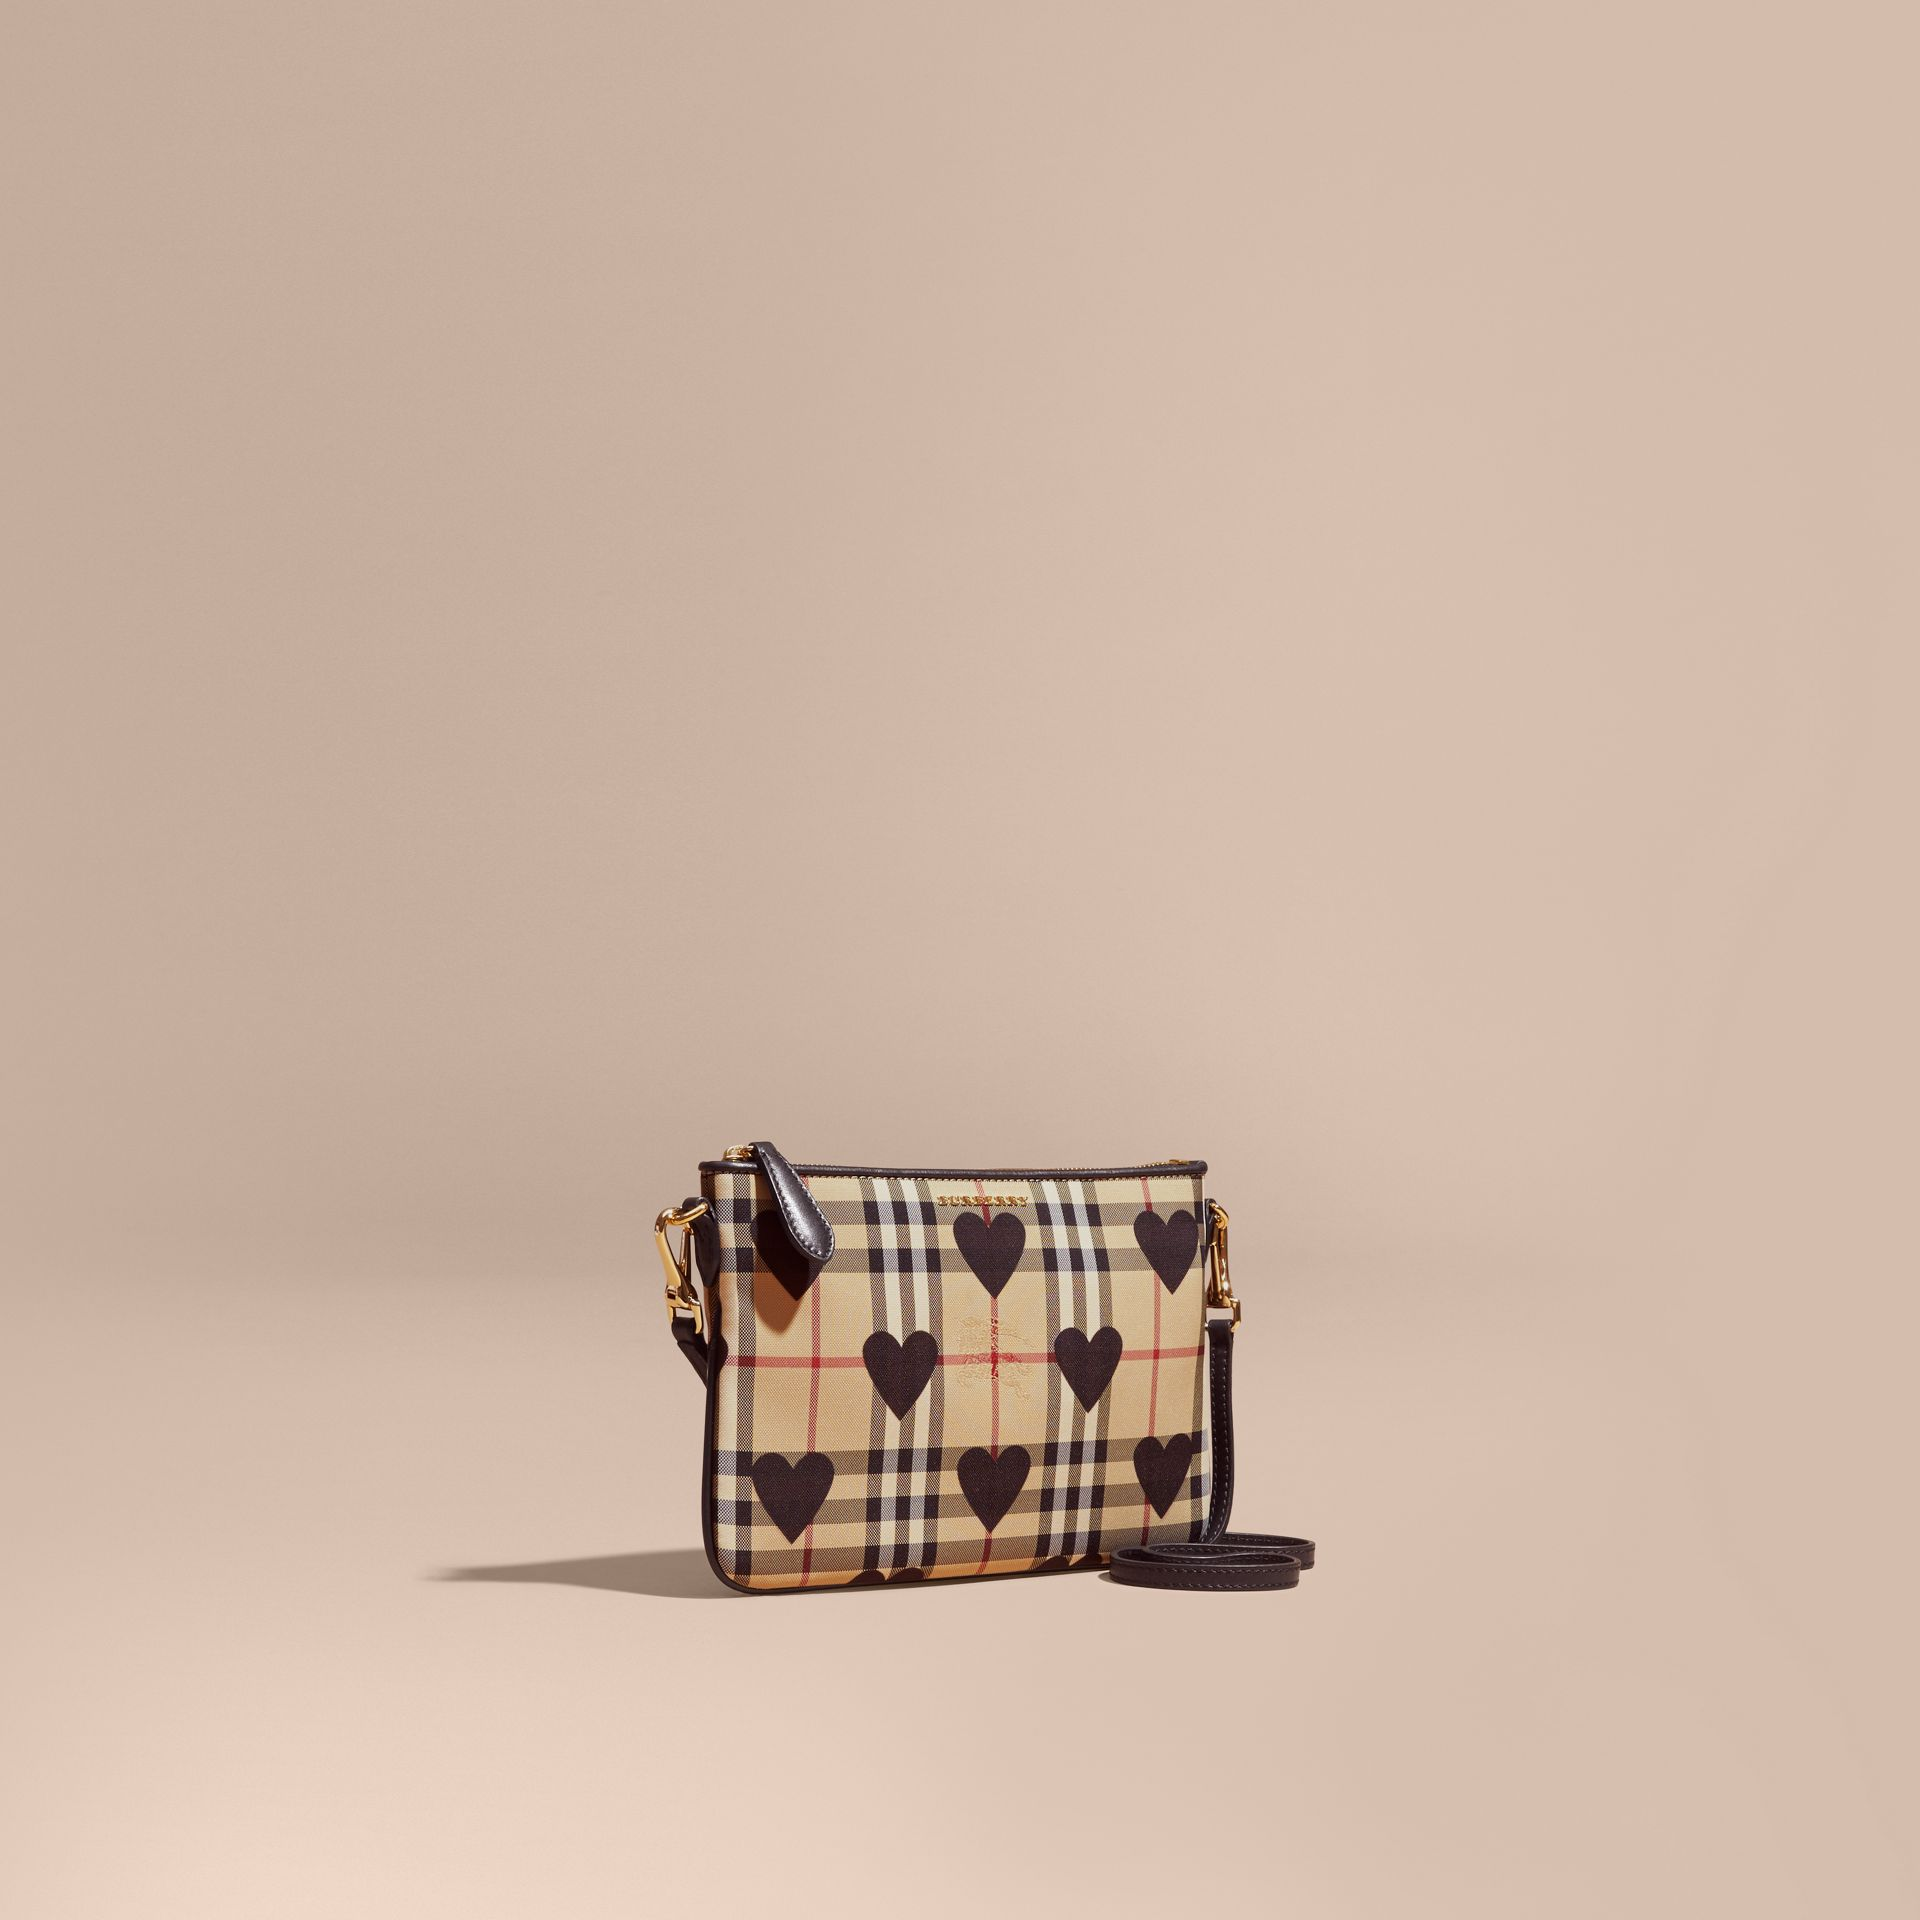 Heart Print Check and Leather Clutch Bag in Black - gallery image 1